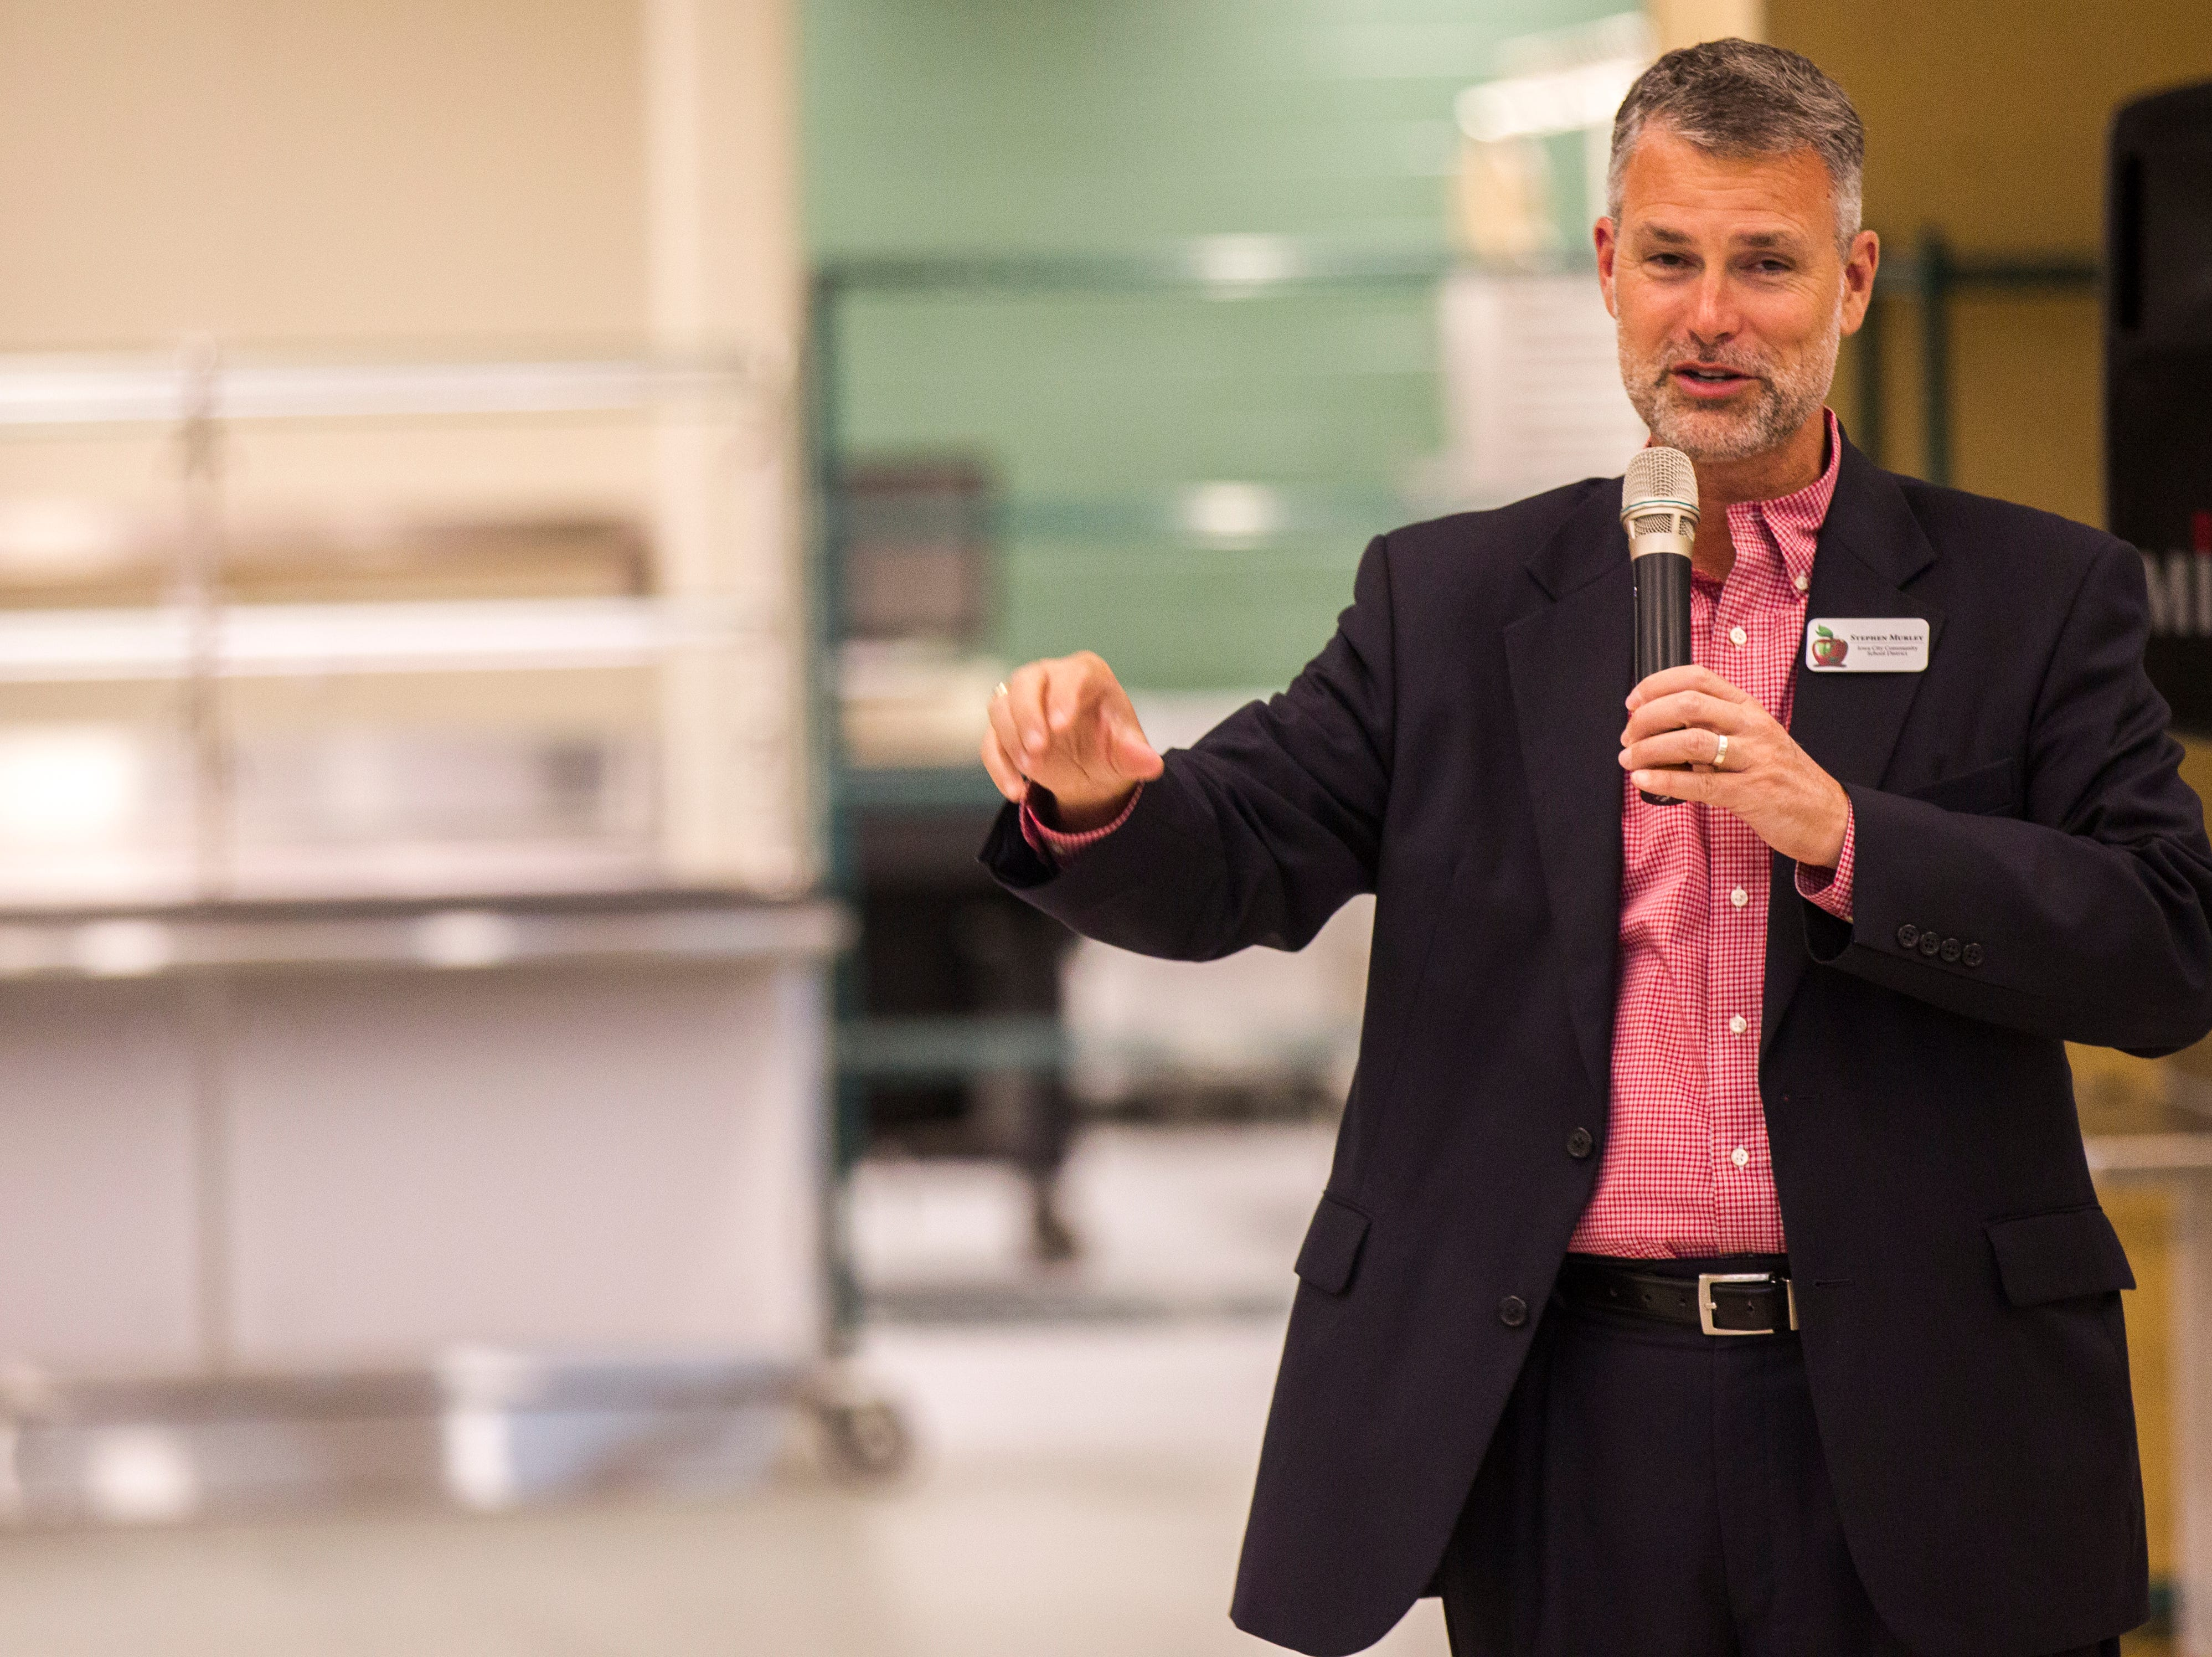 Stephen Murley, Iowa City Community School District superintendent, speaks during a tour of a recently completed addition to facilities on Wednesday, Aug. 15, 2018, at West High School in Iowa City. The addition was the first phase of renovations set to take place for the building that opened in 1968.